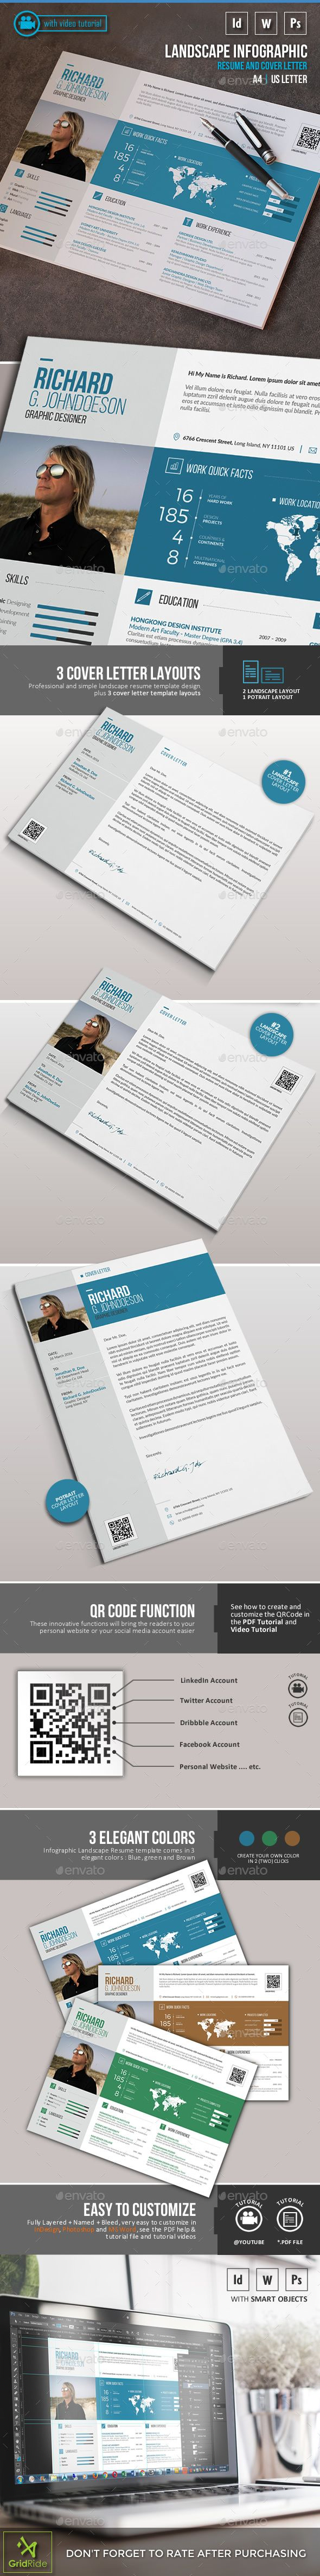 Landscape Infographic Resume Template PSD, MS Word. Download here: http://graphicriver.net/item/landscape-infographic-resume/16135251?ref=ksioks